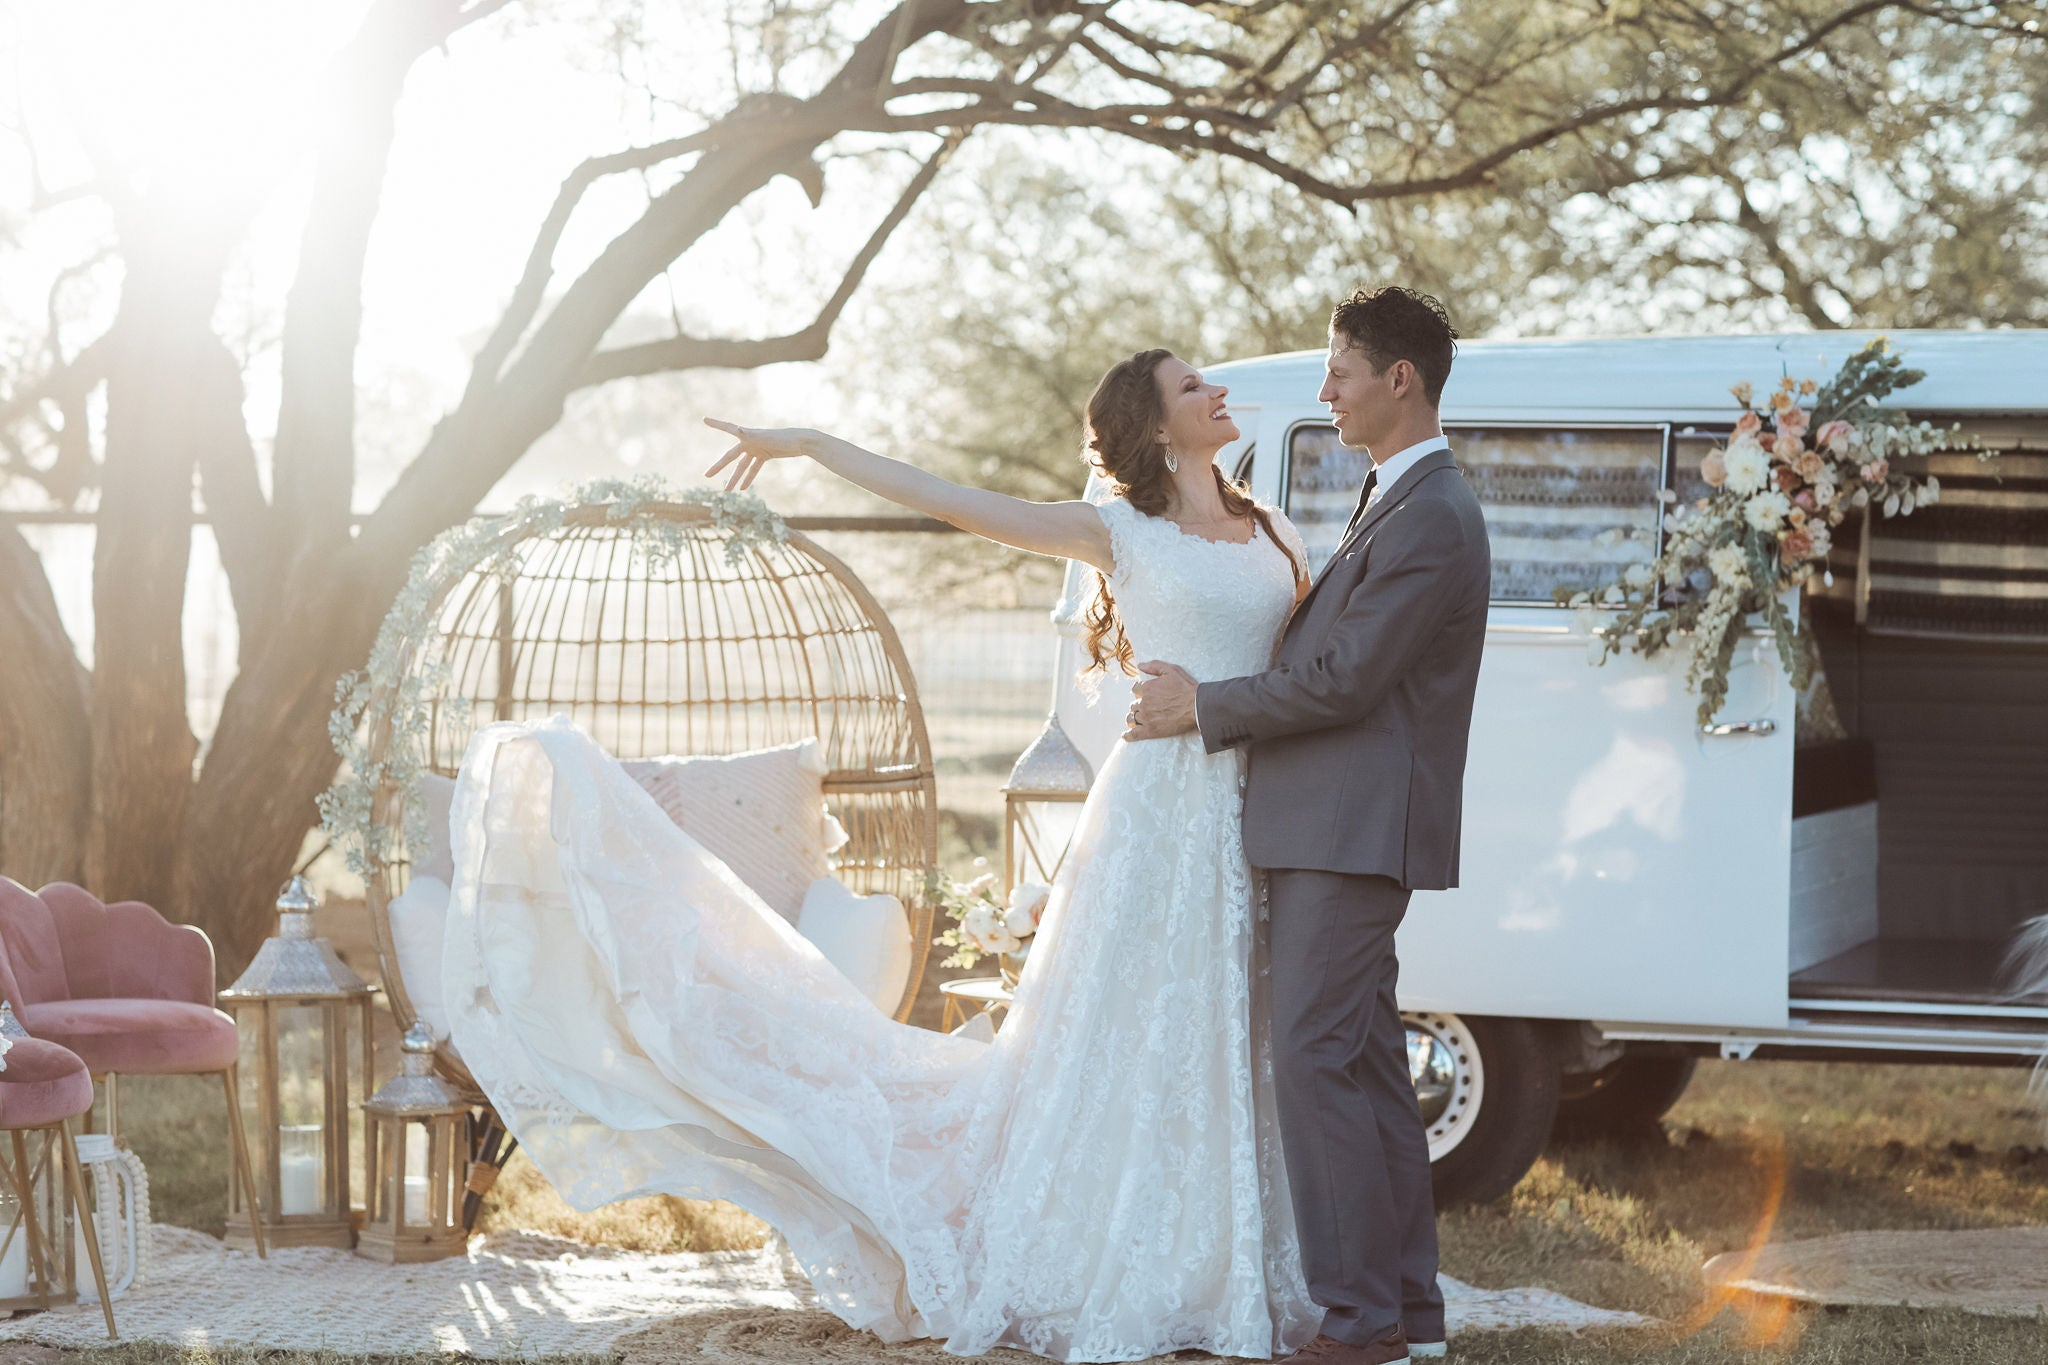 VW Bus Bridals with our Modest Bridal Gown